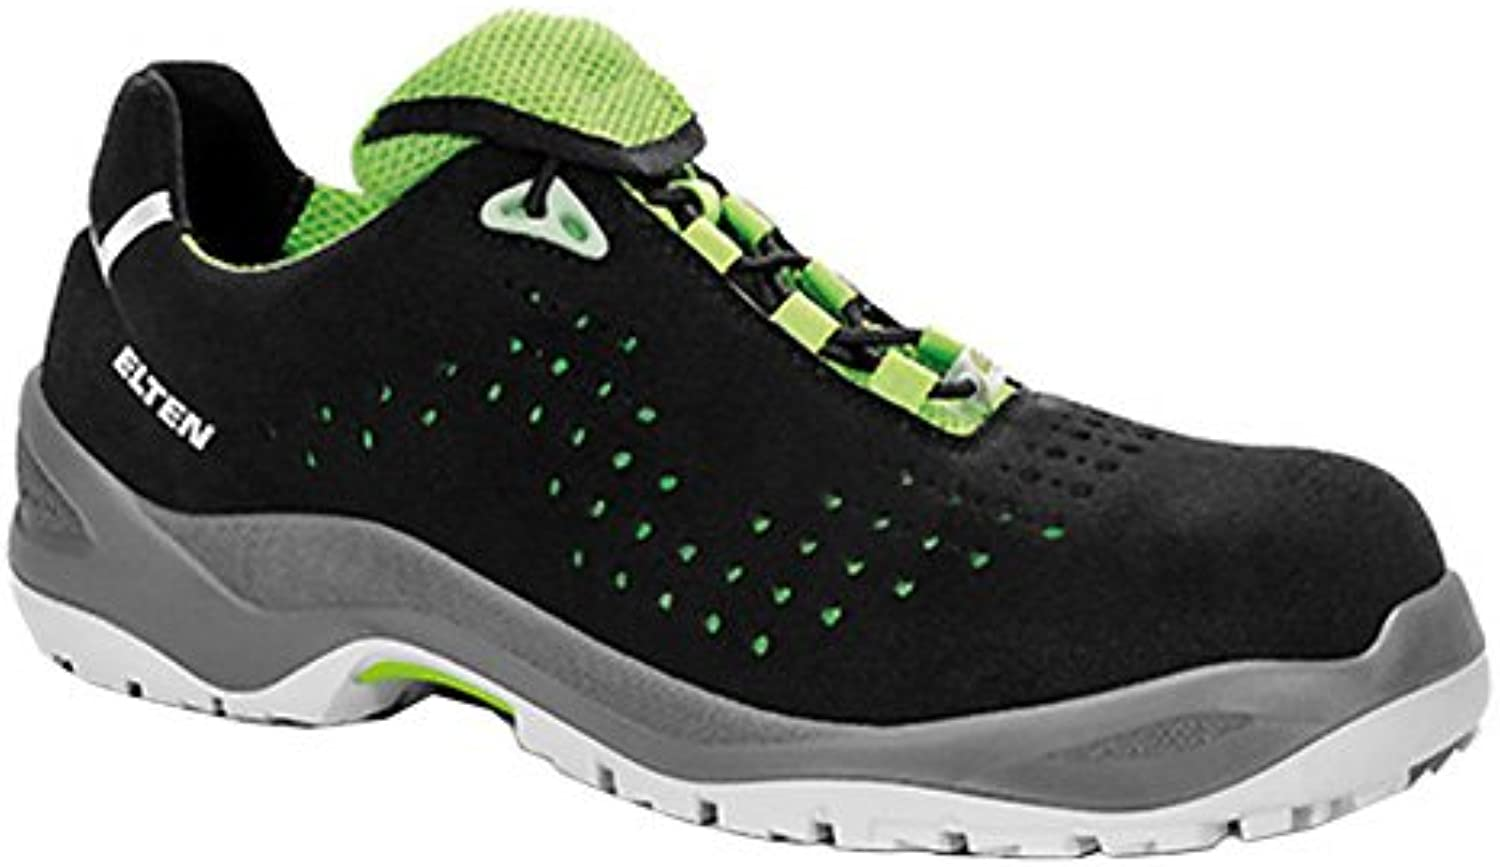 - Elten Impulse Green Low Esd S1p, Zapatos de Seguridad Unisex adulto, Negro (Schwarz 1), 36 EU